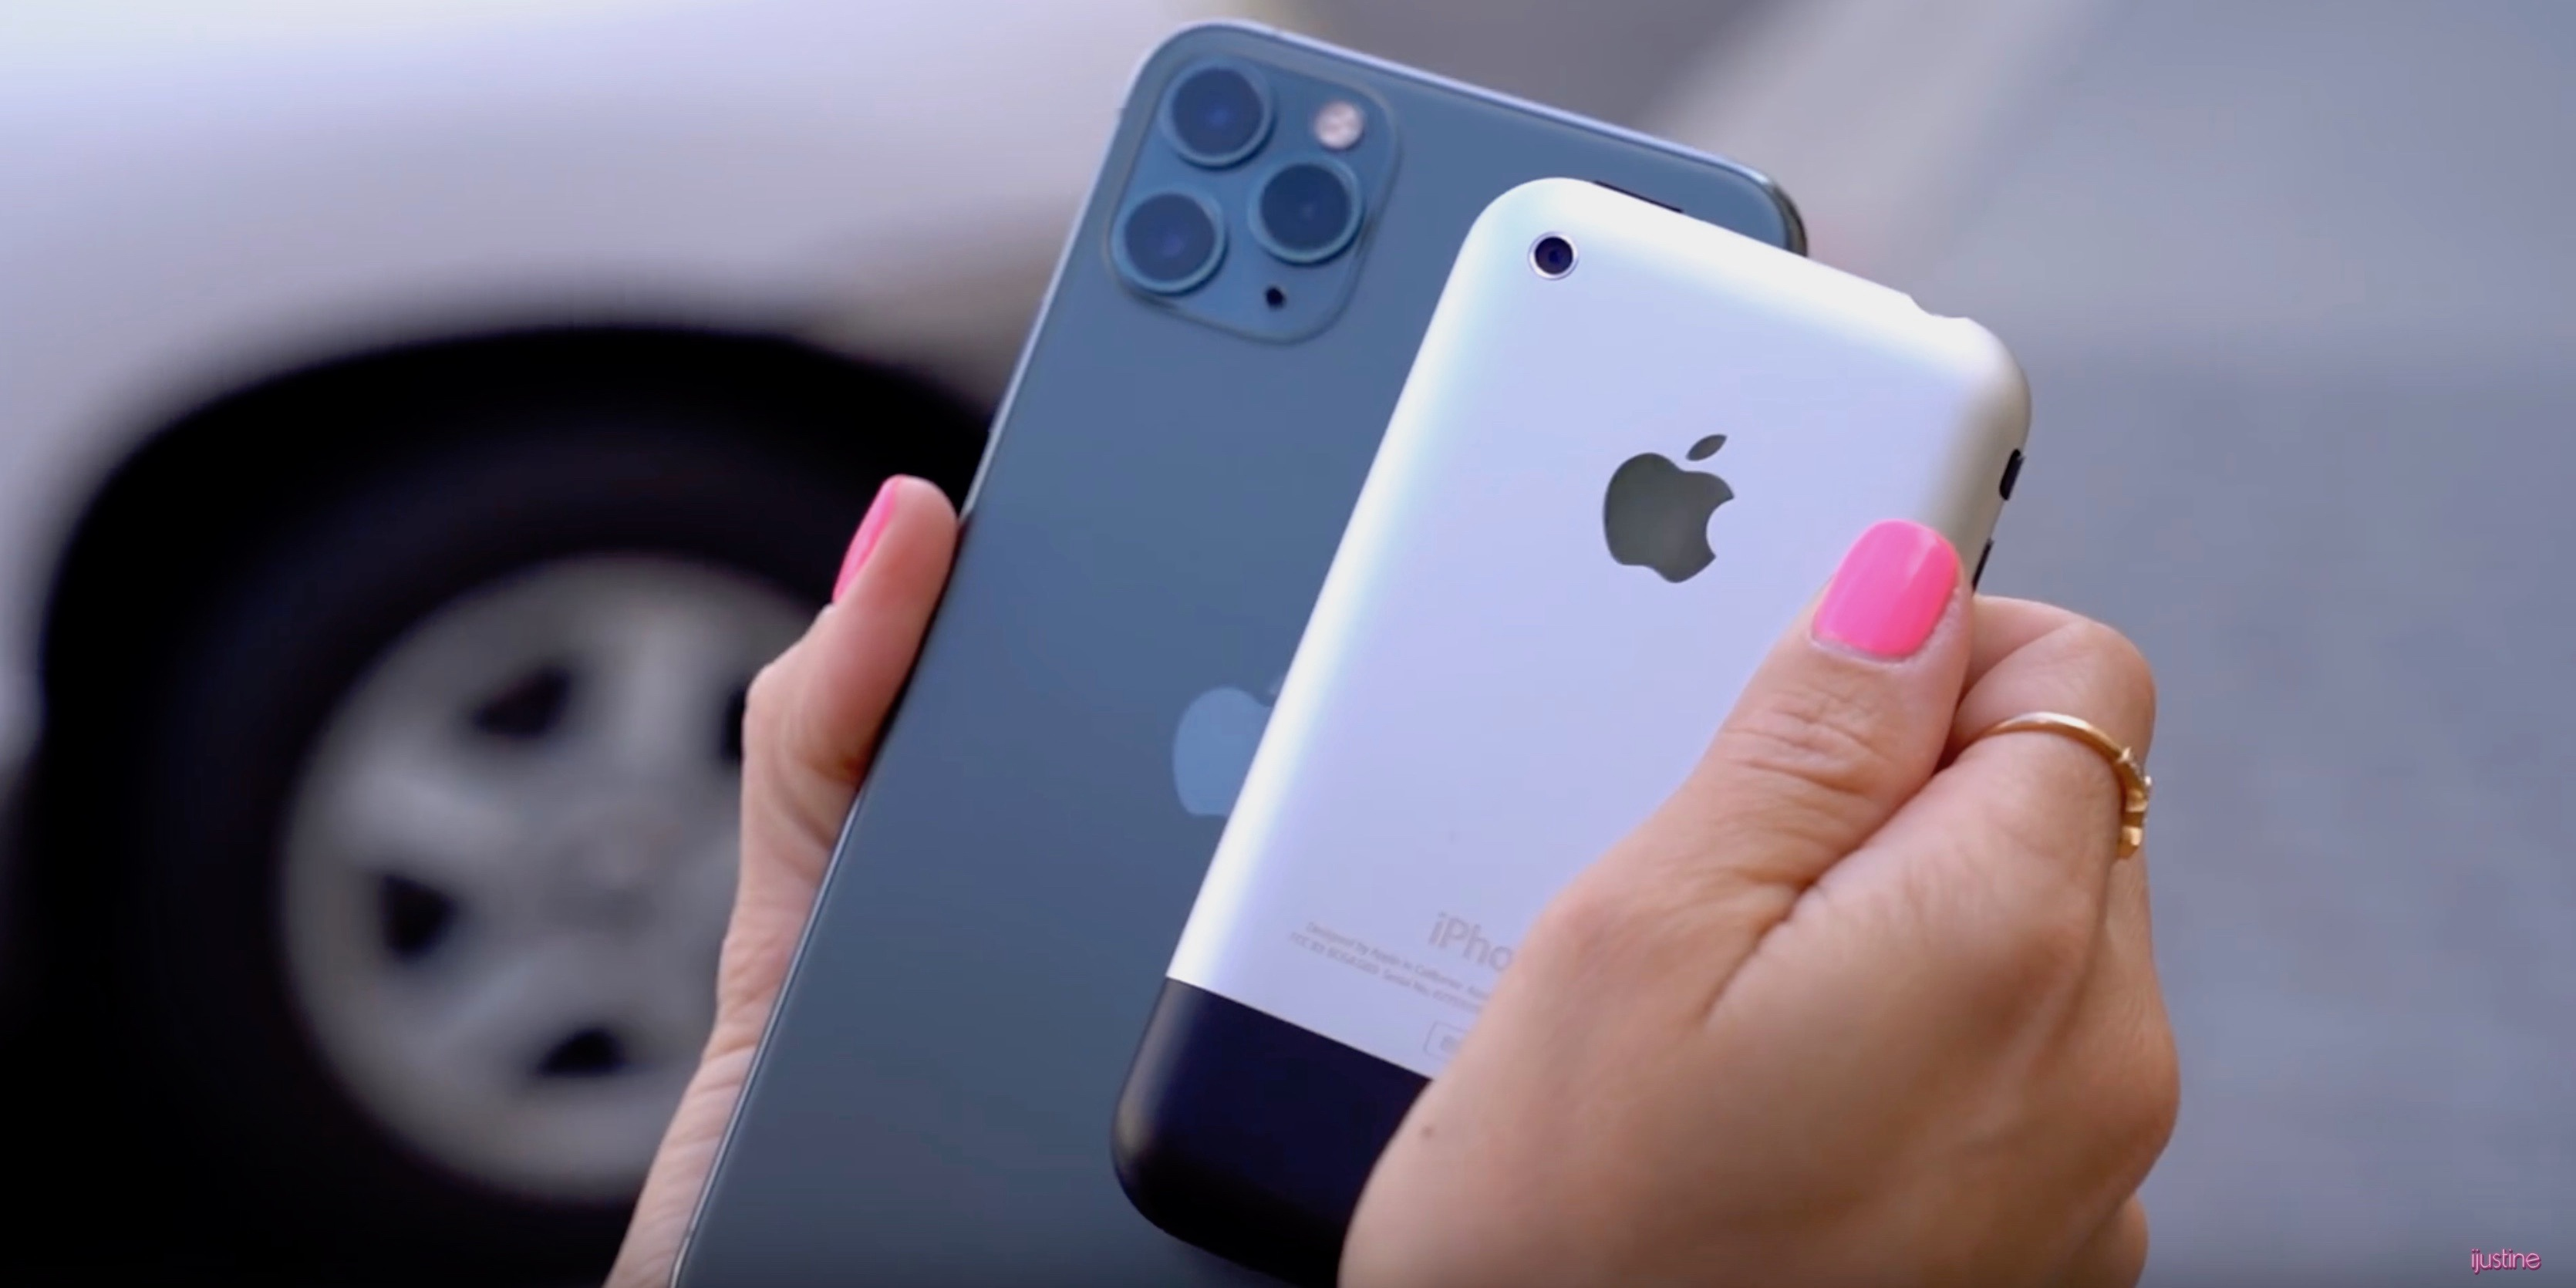 iPhone 11 makes the original iPhone camera look like a